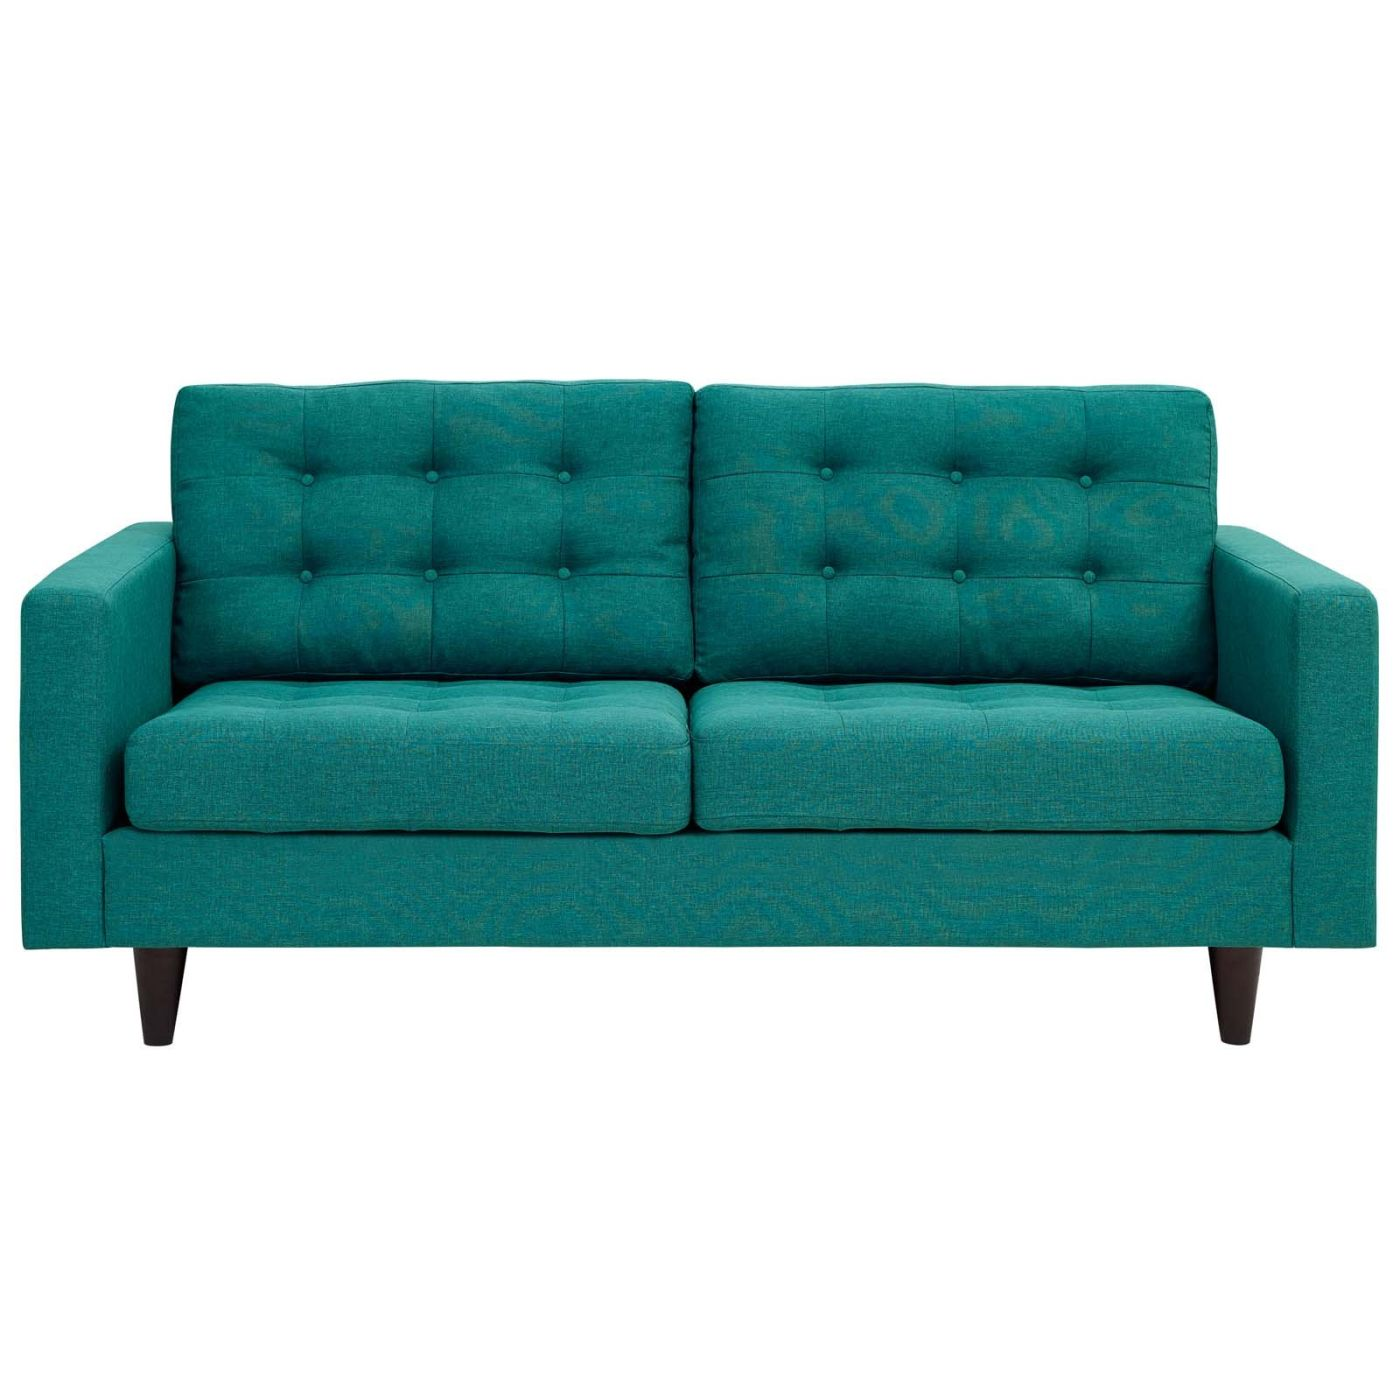 Modway Empress Upholstered Loveseat Eei 1547 Bei Only At Contemporary Furniture Warehouse